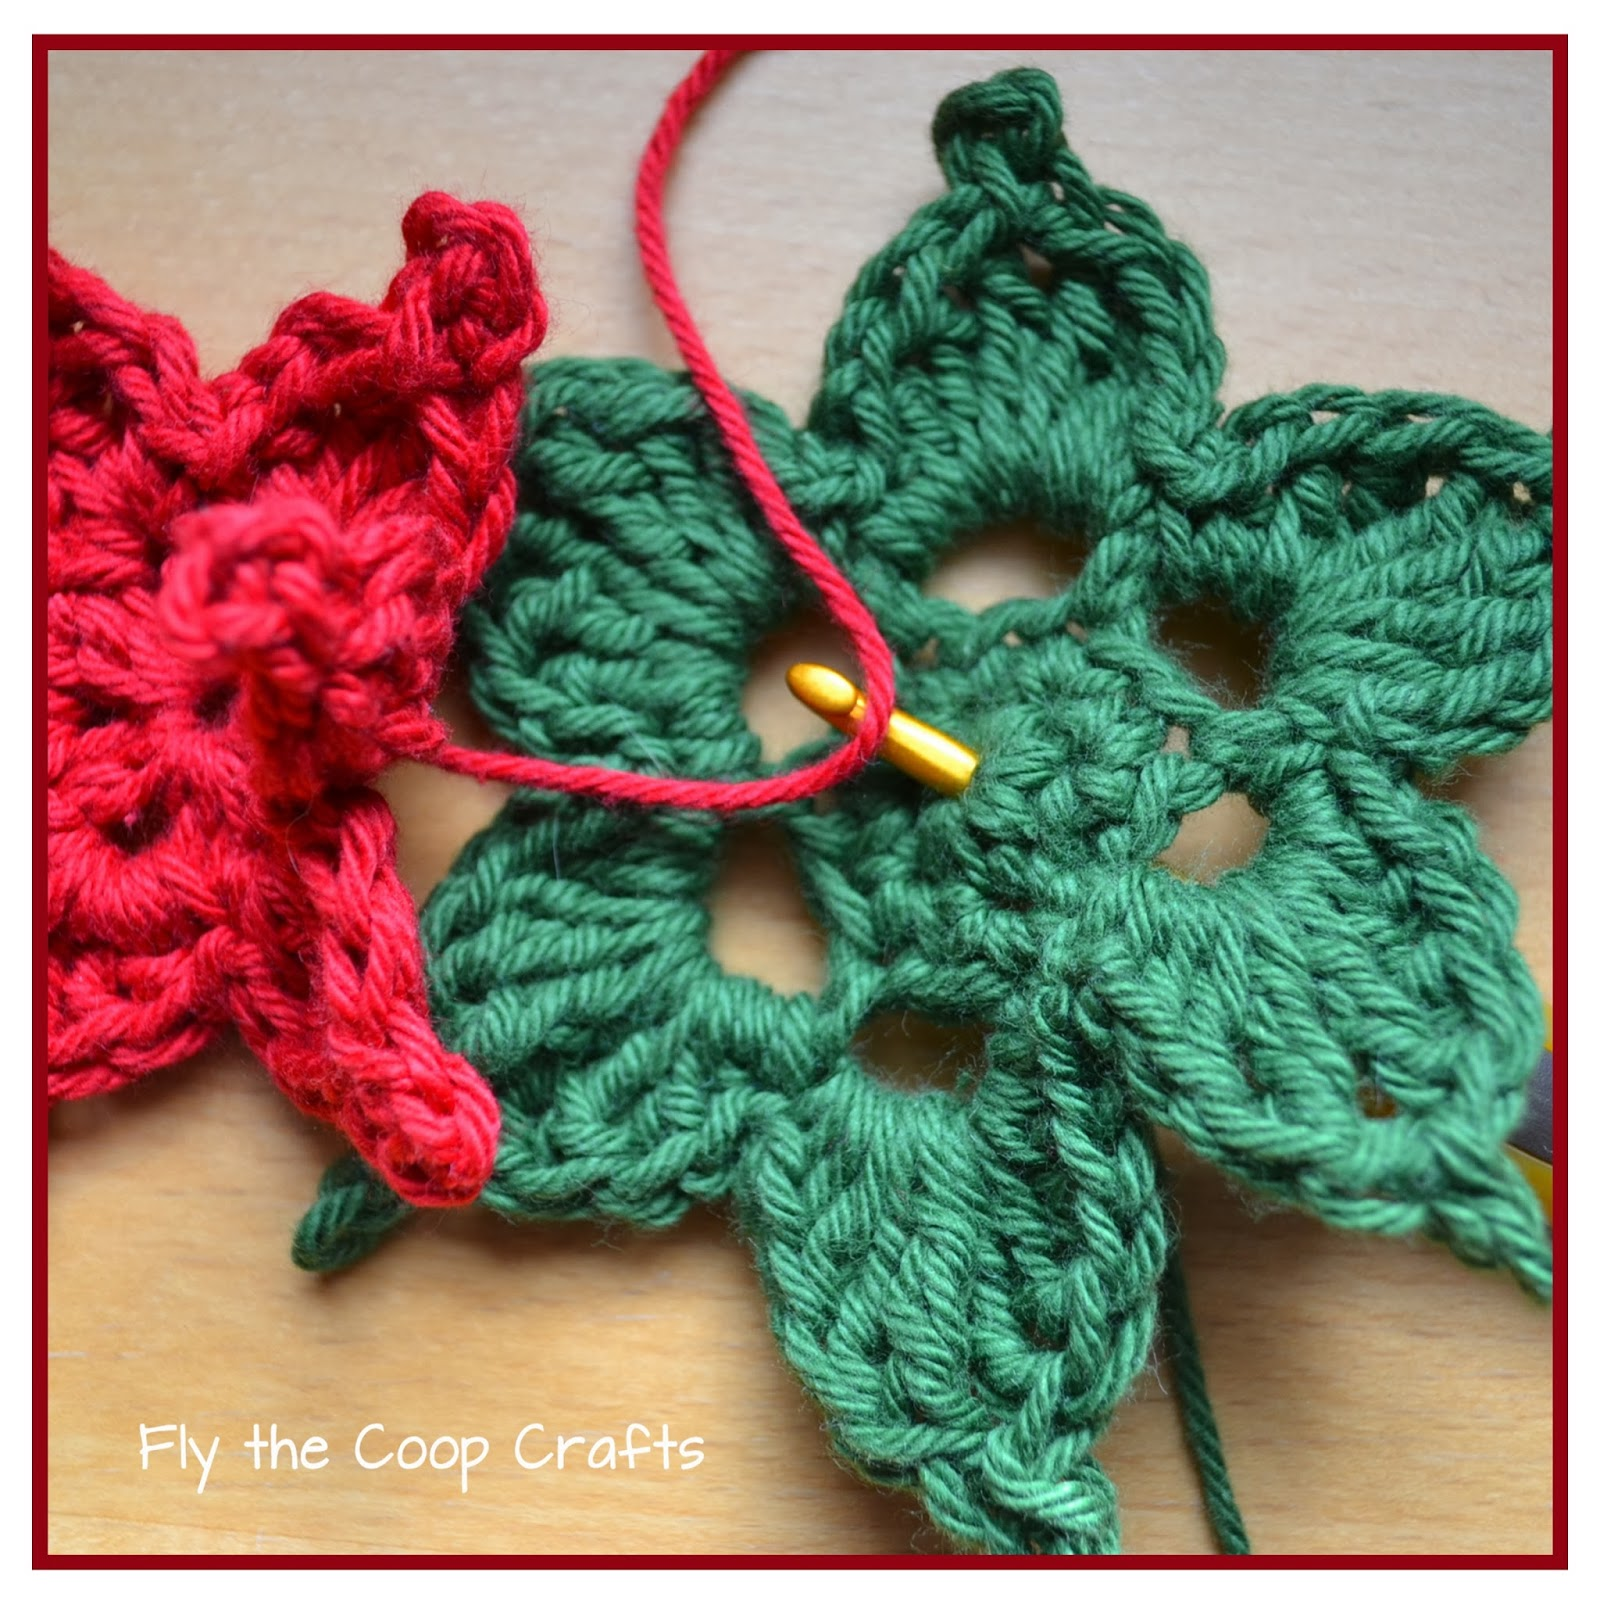 Fly The Coop Crafts Poinsettias A Crochet Tutorial